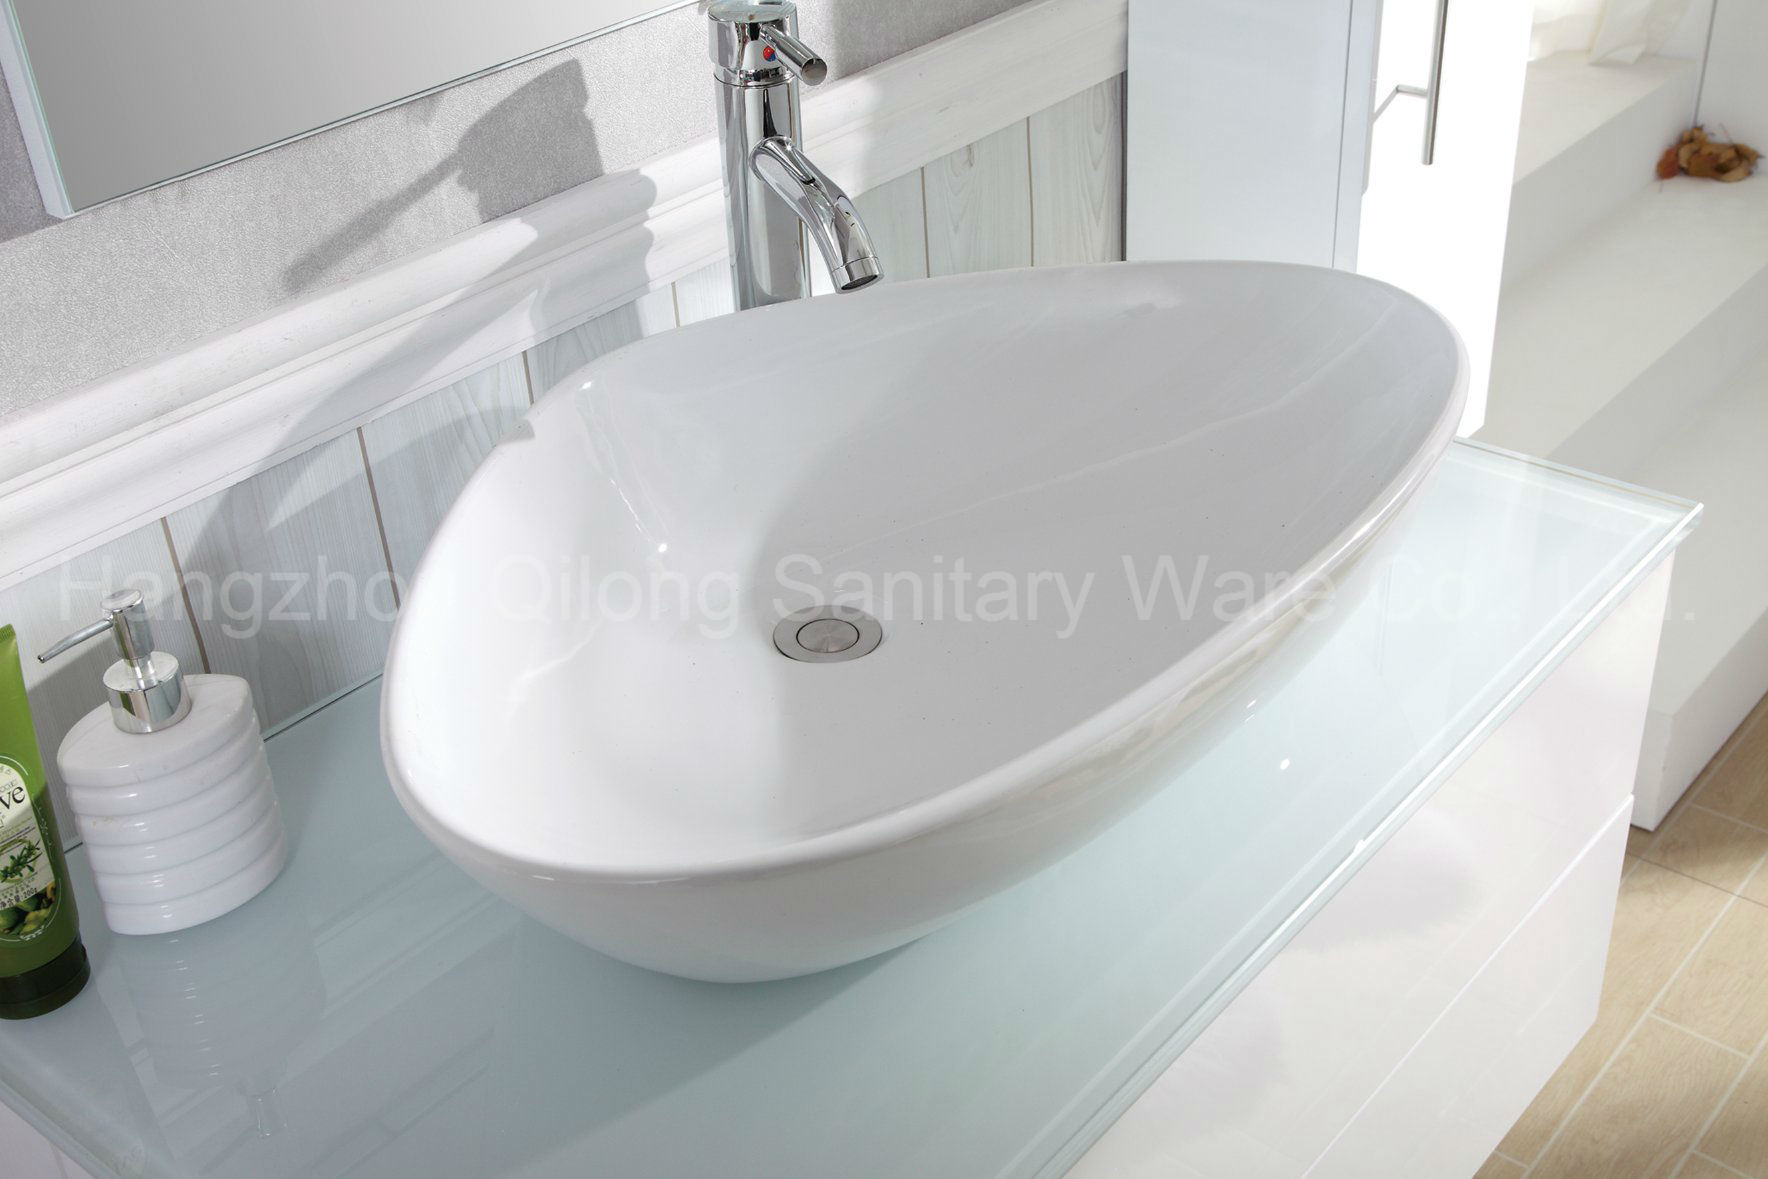 Ultrawhite Glass MDF Bathroom Vanity with Triangular Basin